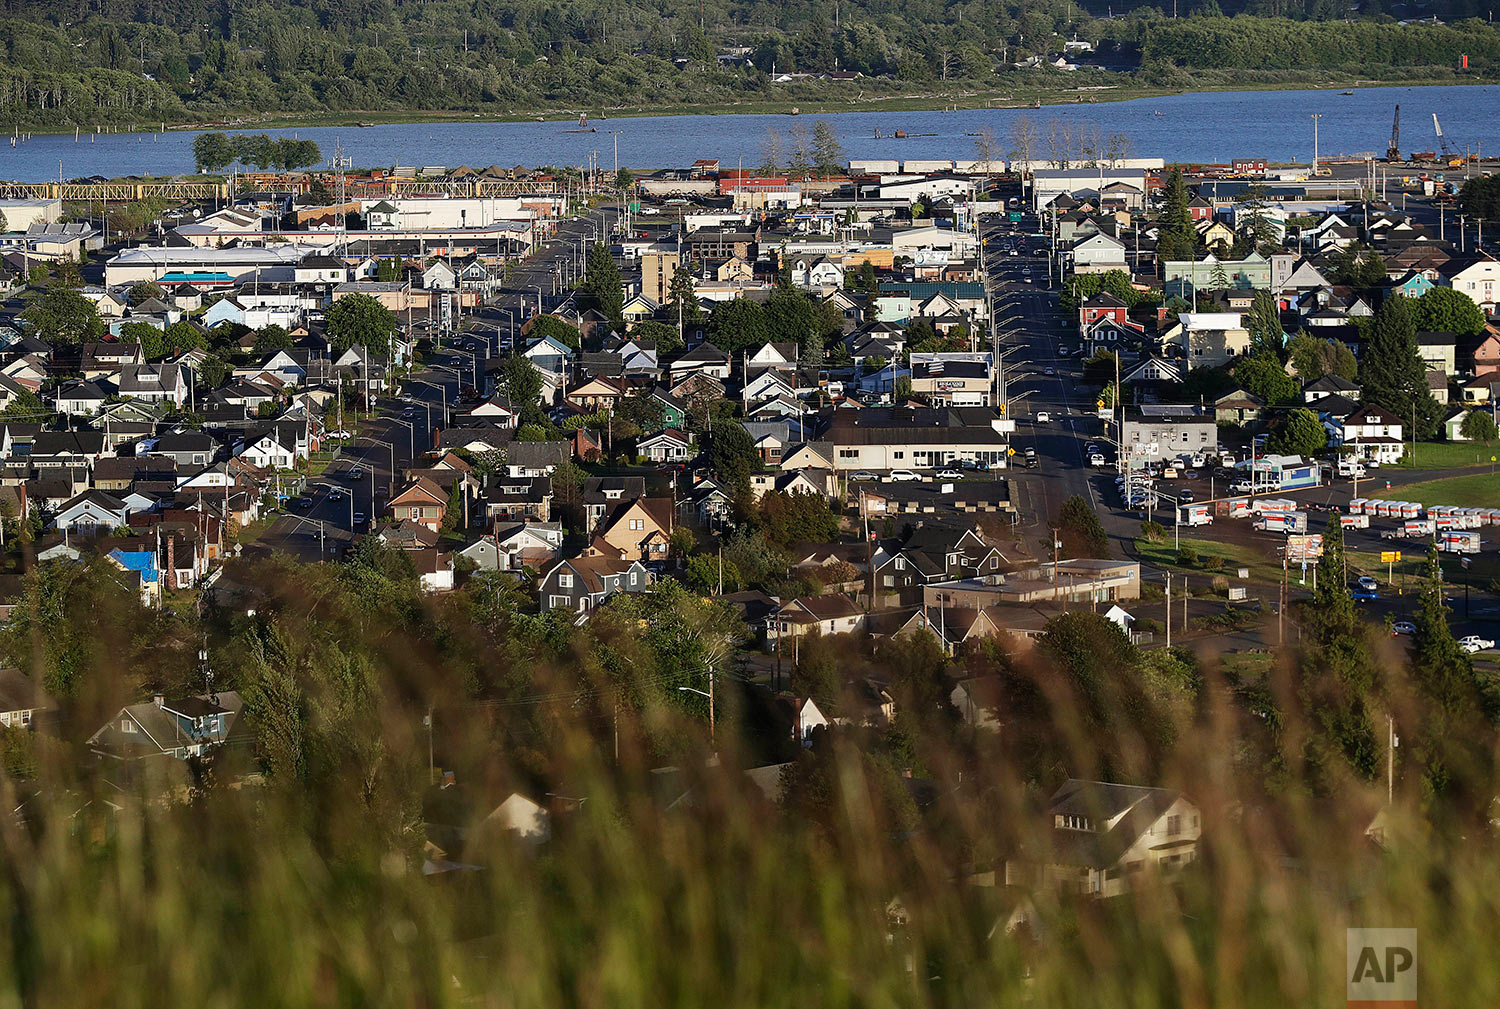 Aberdeen, Wash., is seen along the Chehalis River Friday, June 16, 2017. Aberdeen was built as a boom town at the turn of the 20th century. Its spectacular landscape, the Chehalis River carves through tree-topped hills to the harbor, offered ships easy access to the Pacific Ocean. Millionaire lumber barons built mansions on the hills. There were restaurants and theaters and traffic that backed up as the drawbridge leading into town seesawed up and down for ship after ship packed with logs and lumber. Now that drawbridge pretty much stays put. (AP Photo/David Goldman)